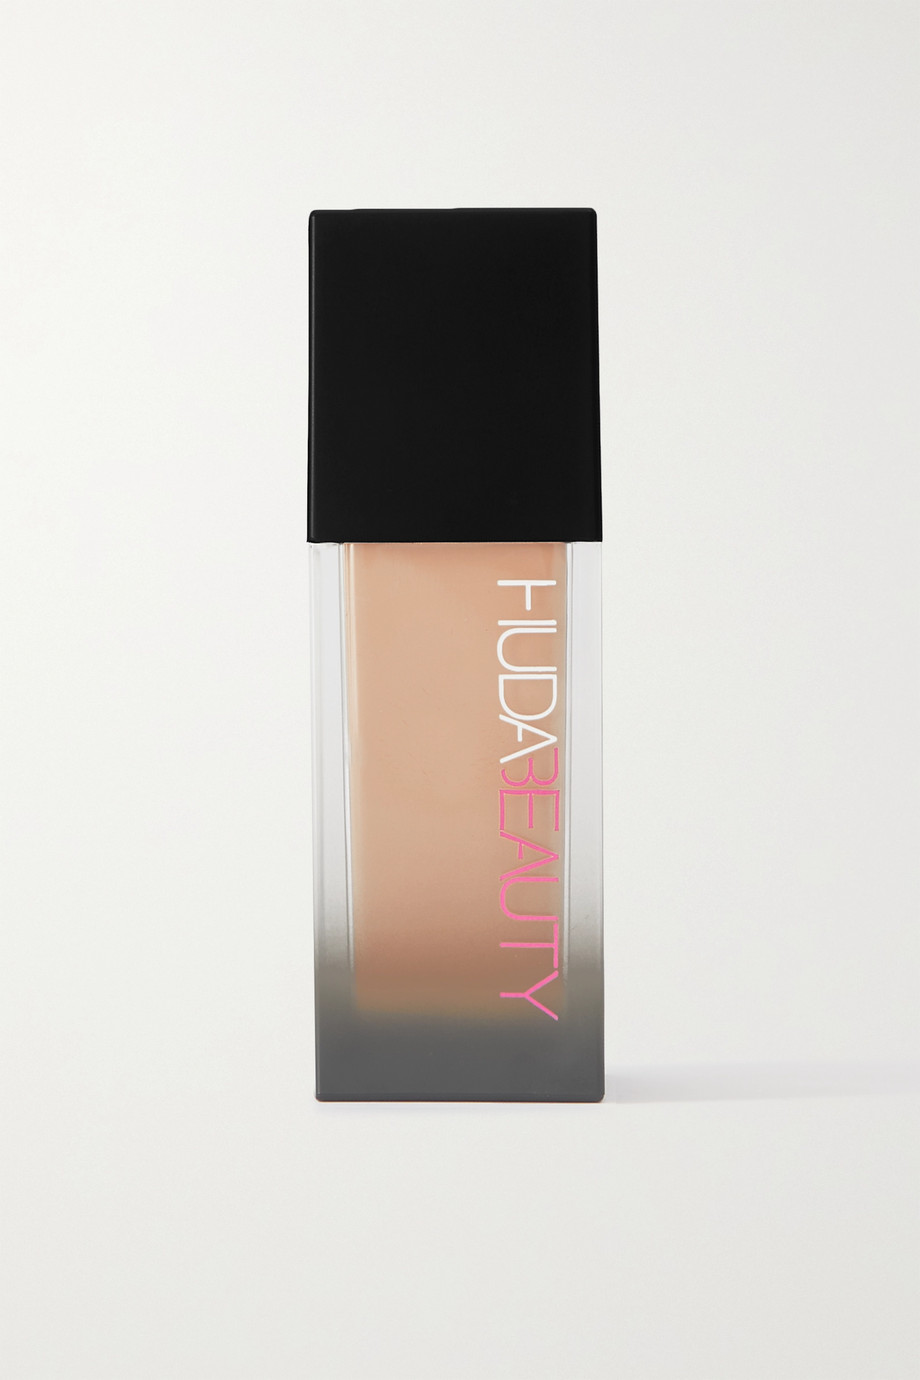 Huda Beauty #FauxFilter Luminous Matte Liquid Foundation – Chai 210B, 35 ml – Foundation